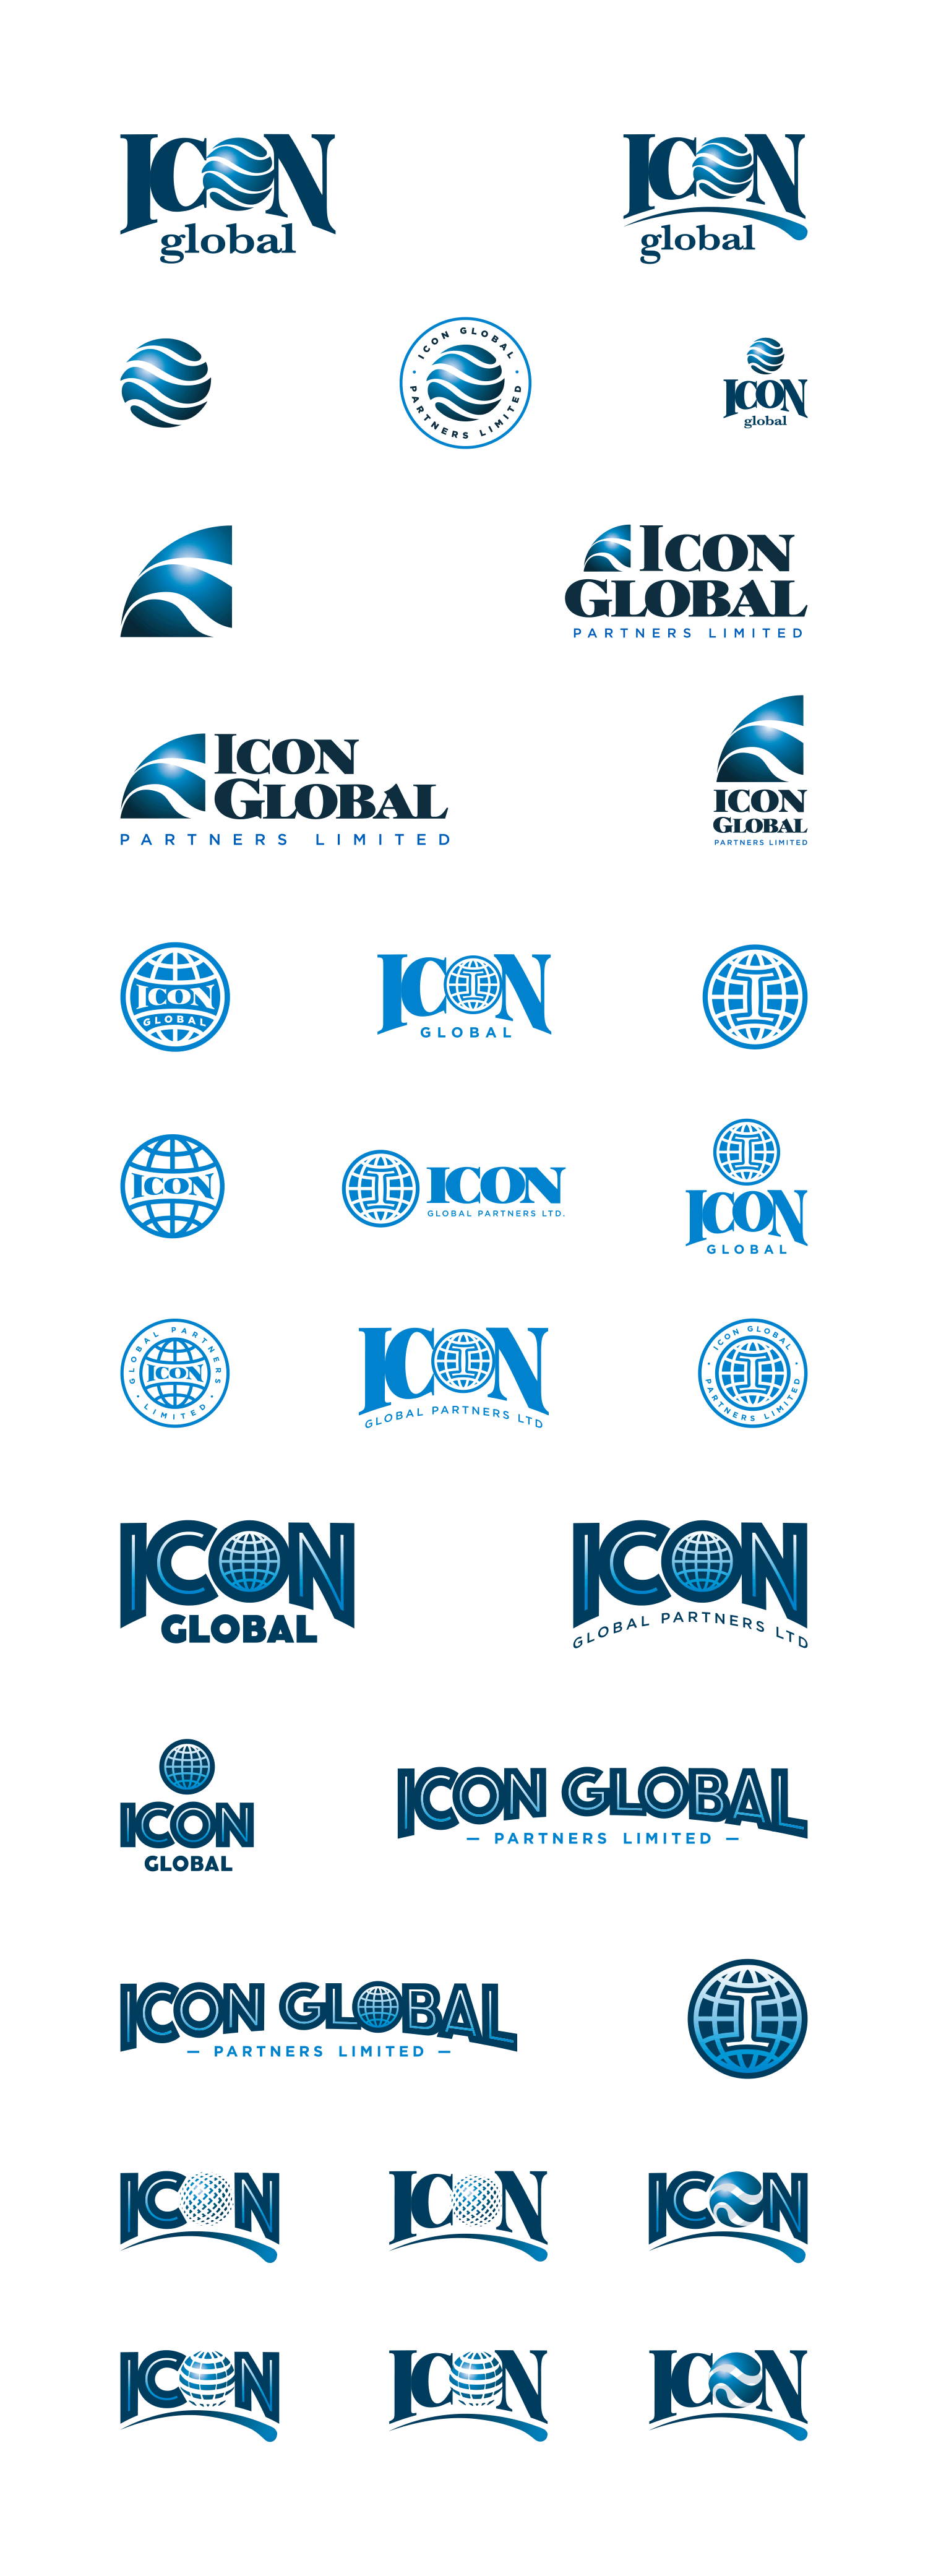 ICON logo explorations